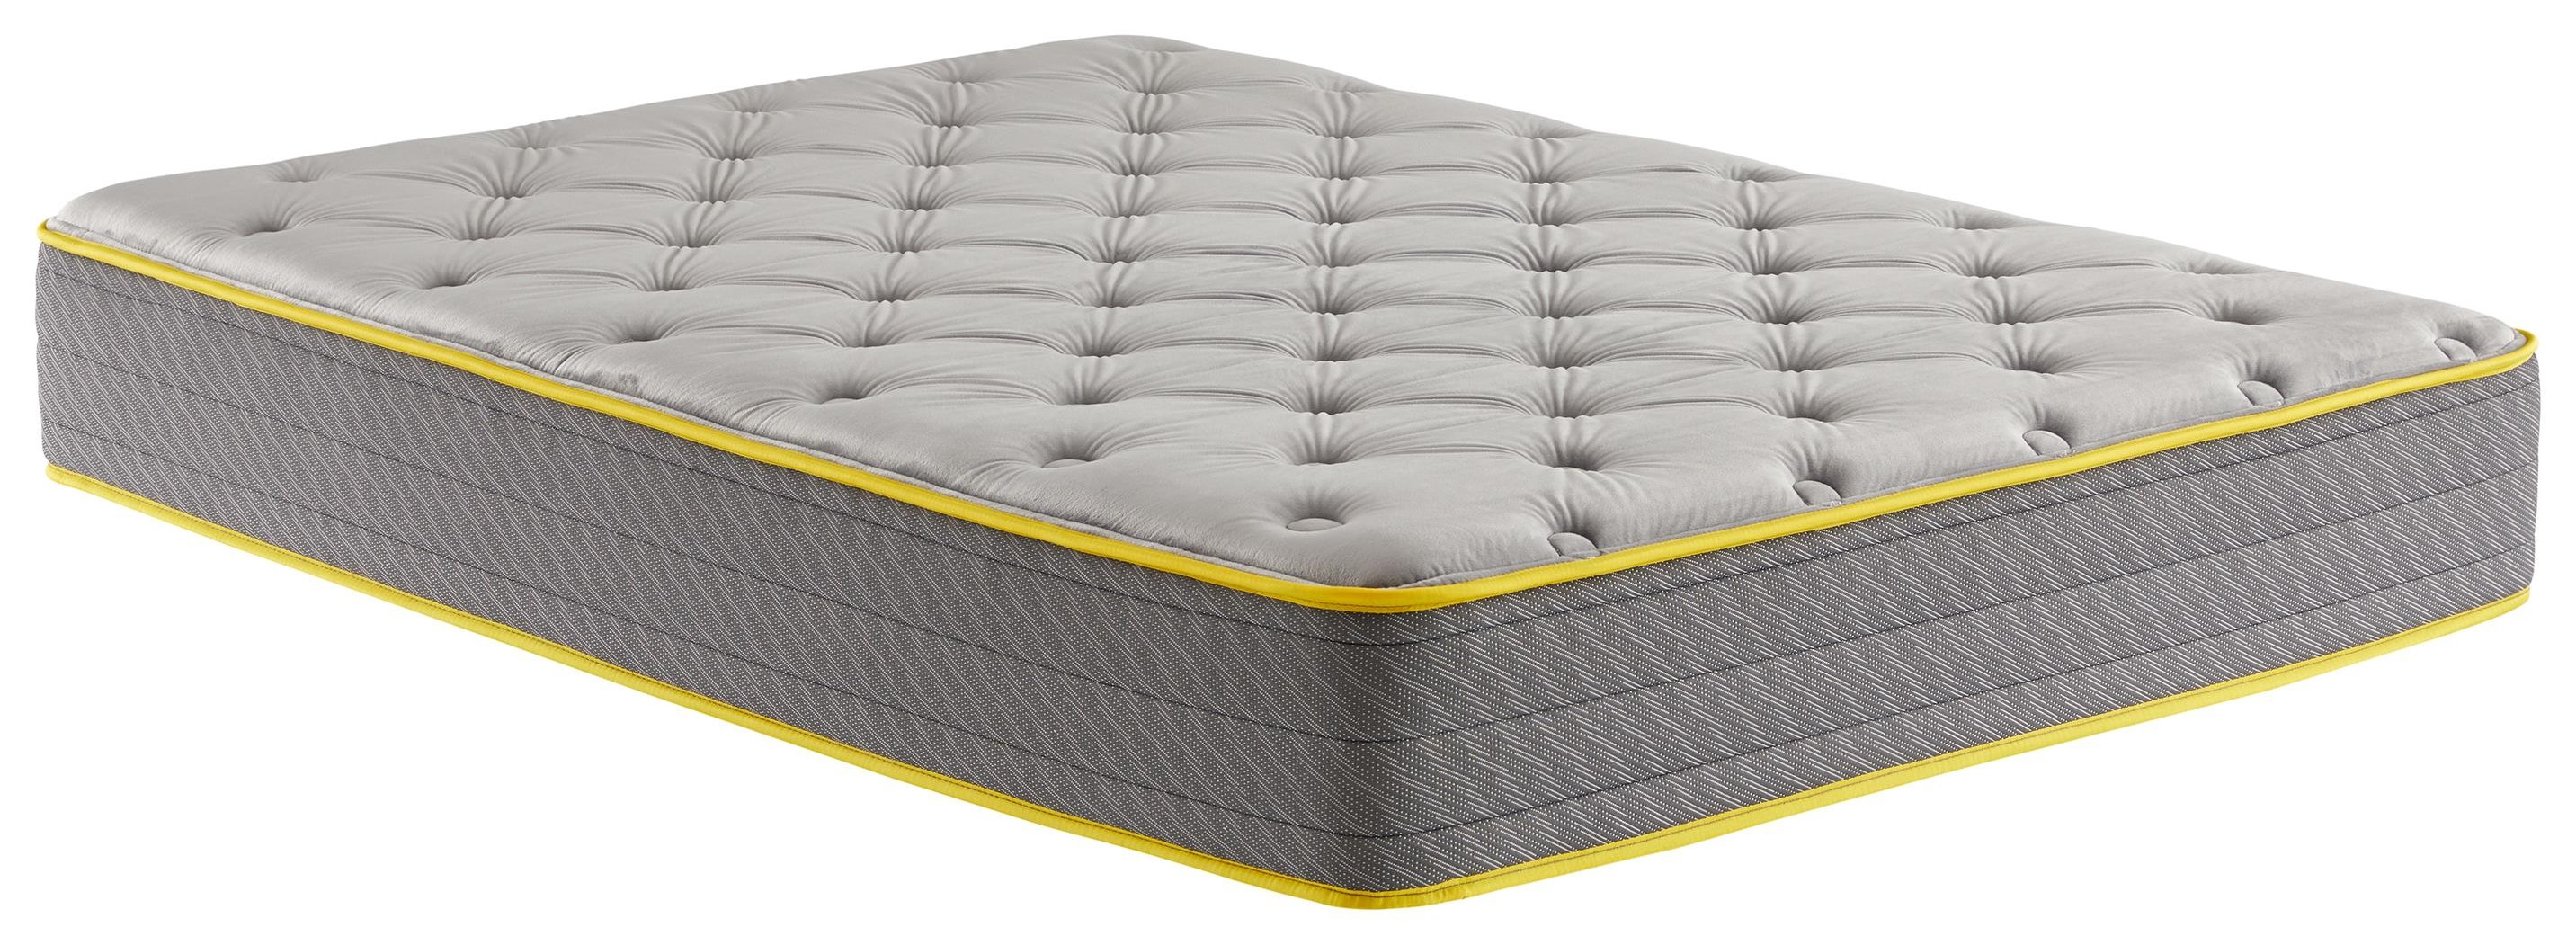 King Medium Firm Mattress